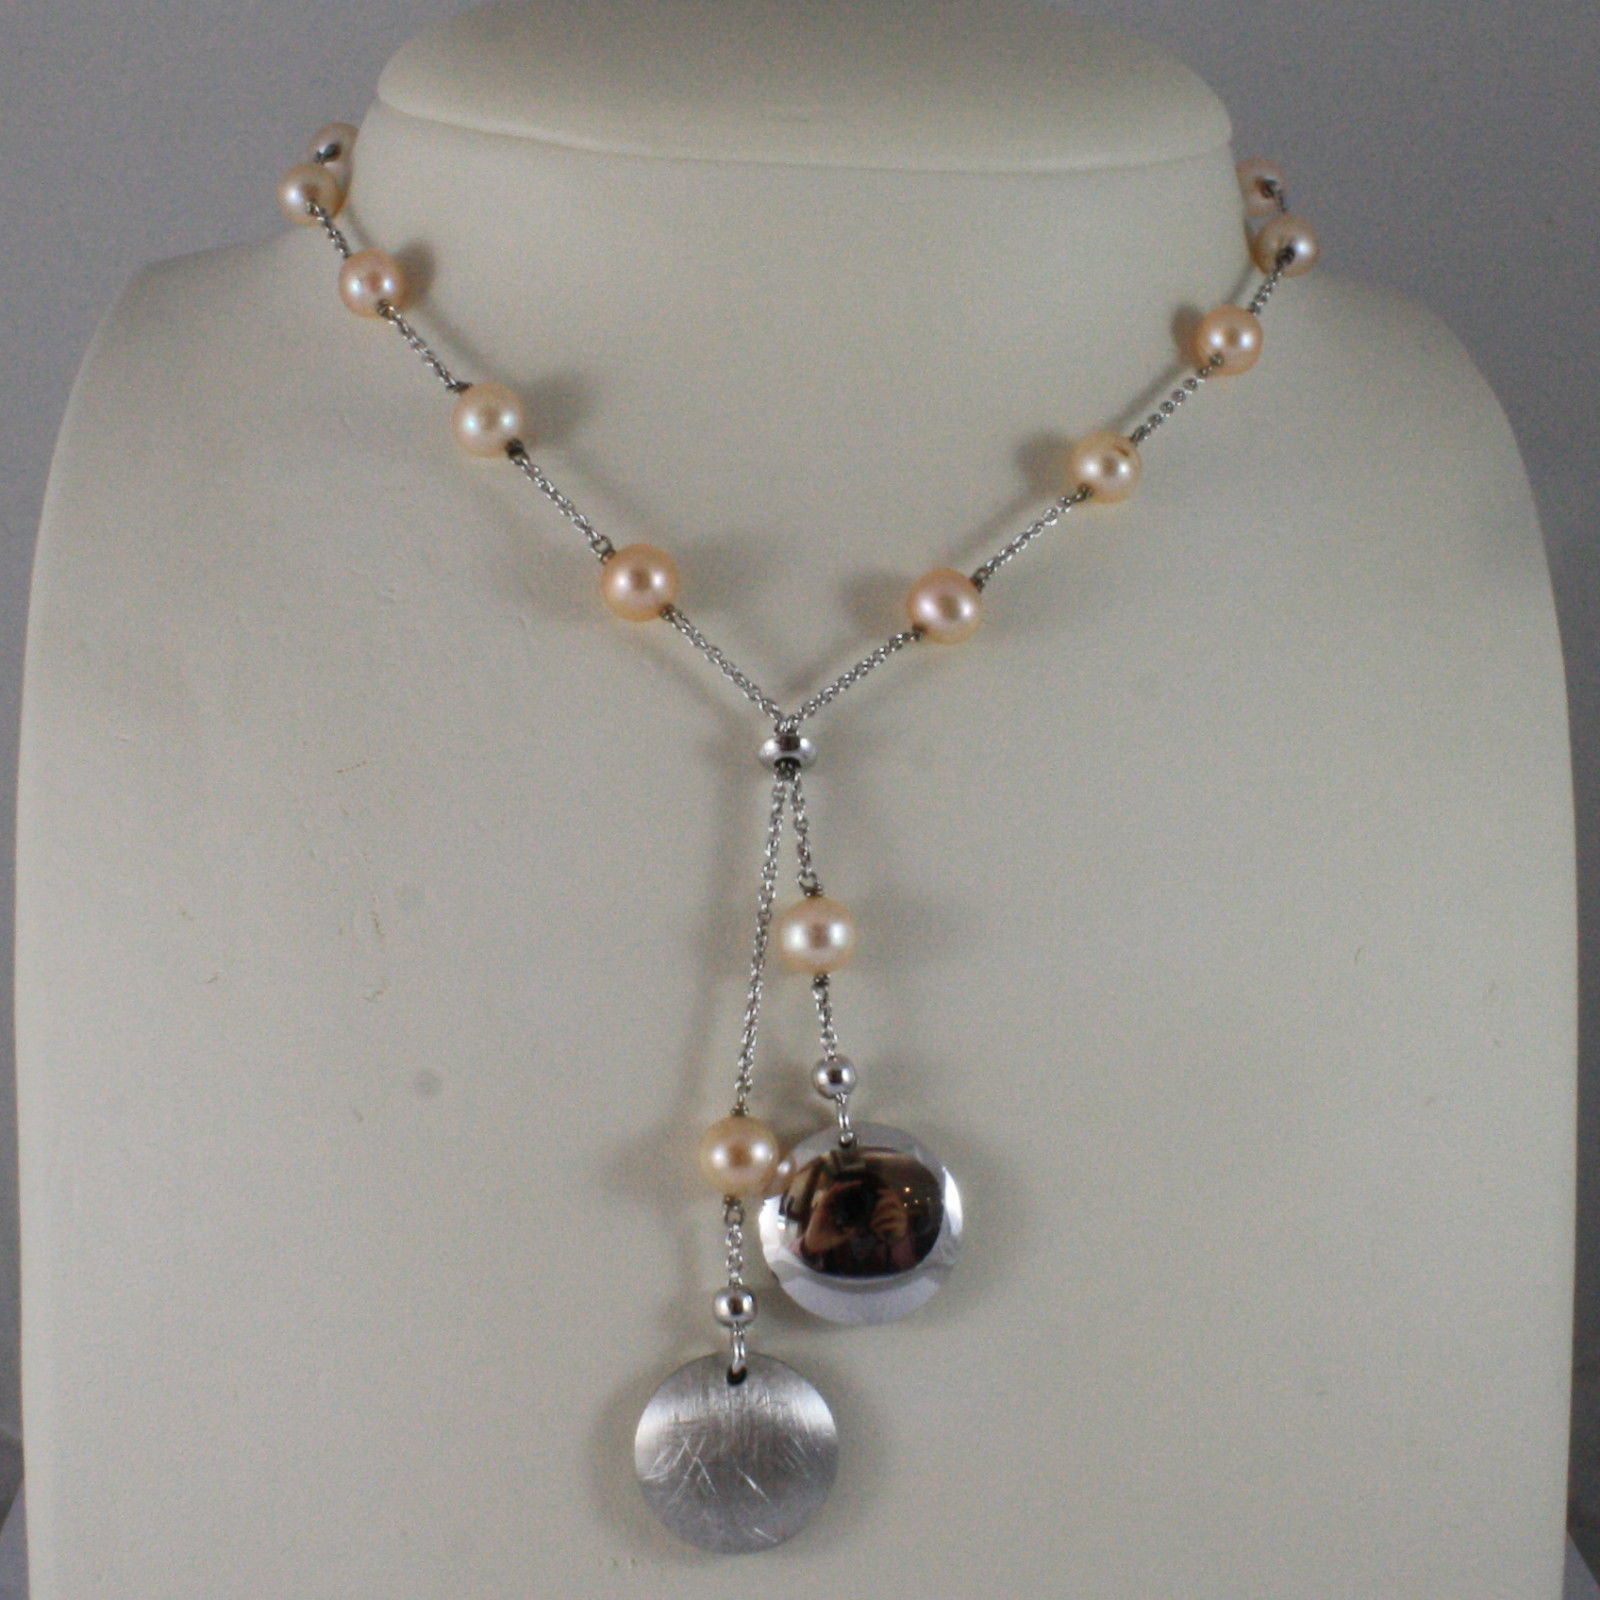 .925 SILVER RHODIUM NECKLACE WITH FRESHWATER ROSE PEARLS AND DISC PENDANT